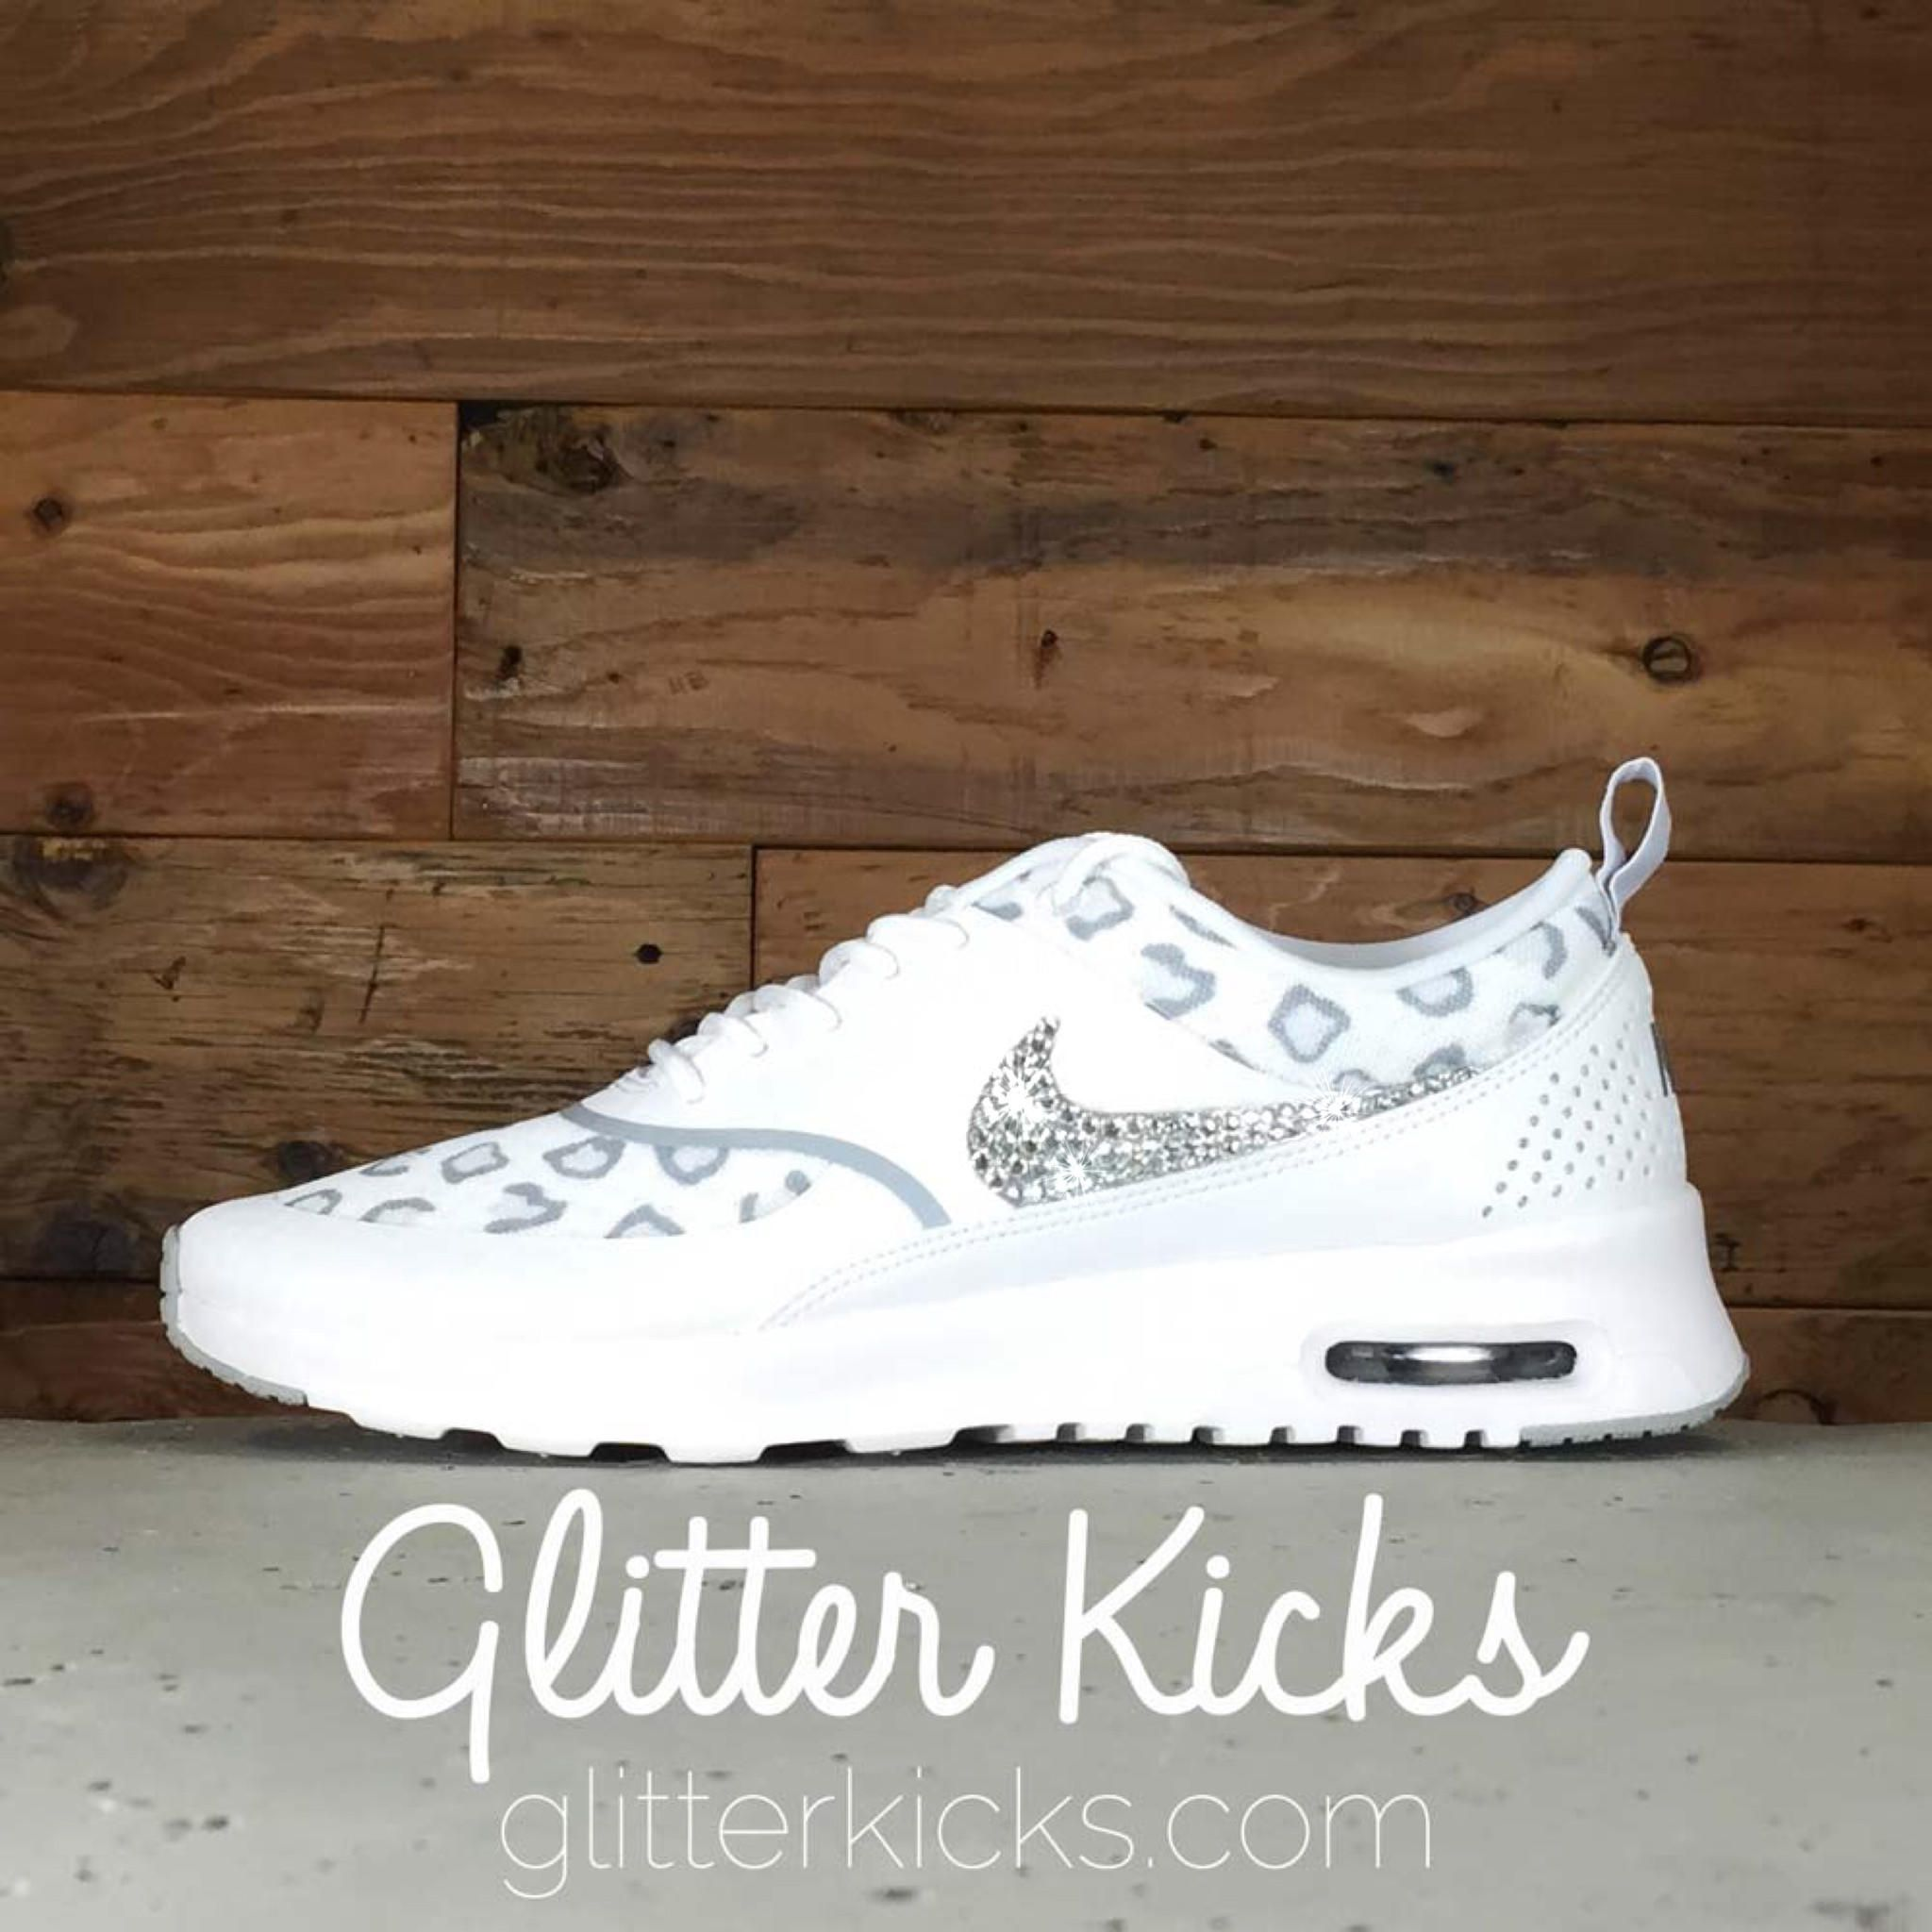 Nike Air Max Thea Print Running Shoes By Glitter Kicks - Customized With  Swarovski Crystal Rhinestones - White Gray Platinum Leopard Print a89514927337